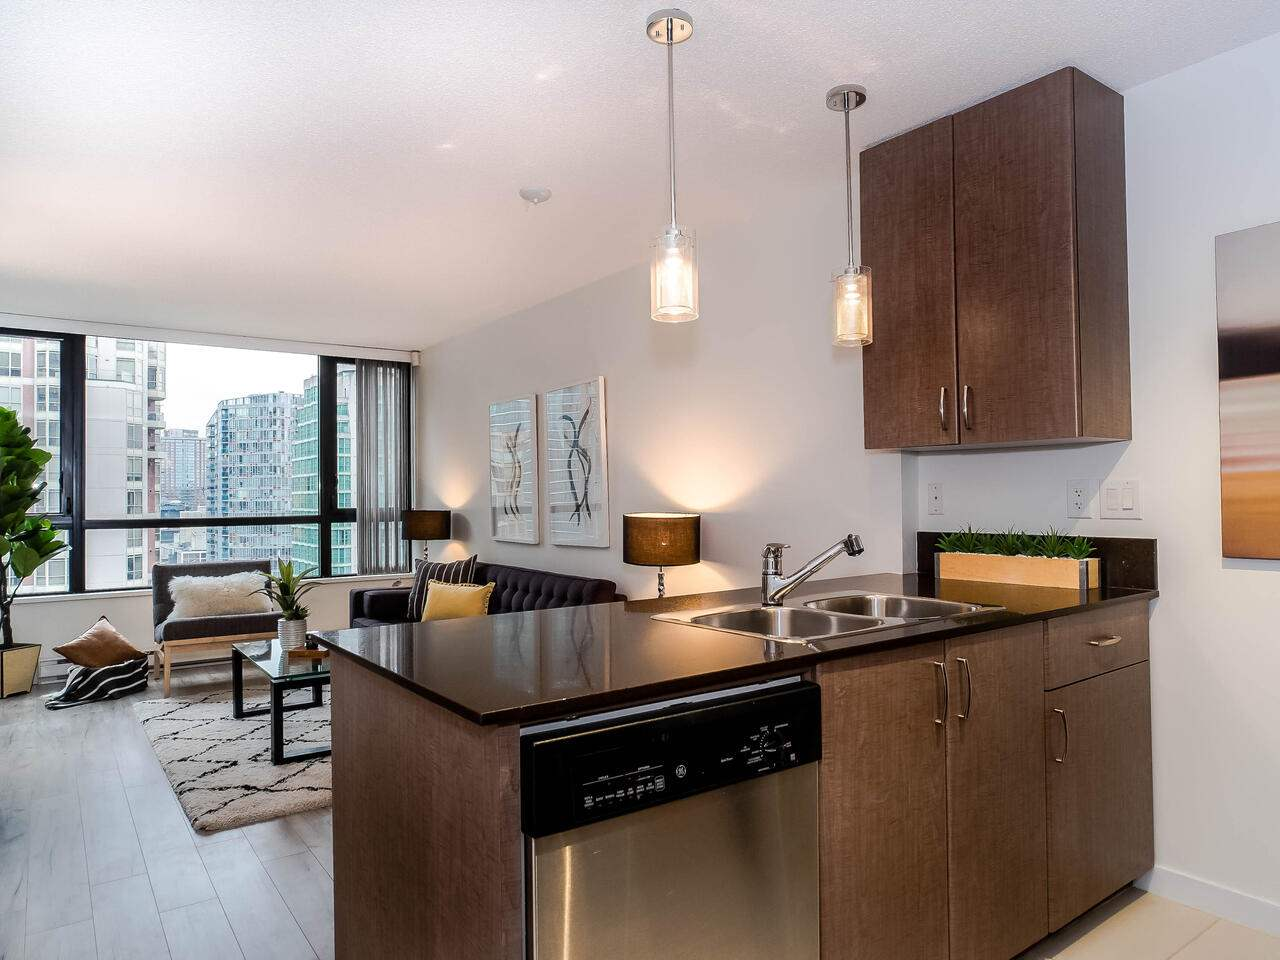 1810 909 MAINLAND STREET - Yaletown Apartment/Condo for sale, 1 Bedroom (R2518845) - #18